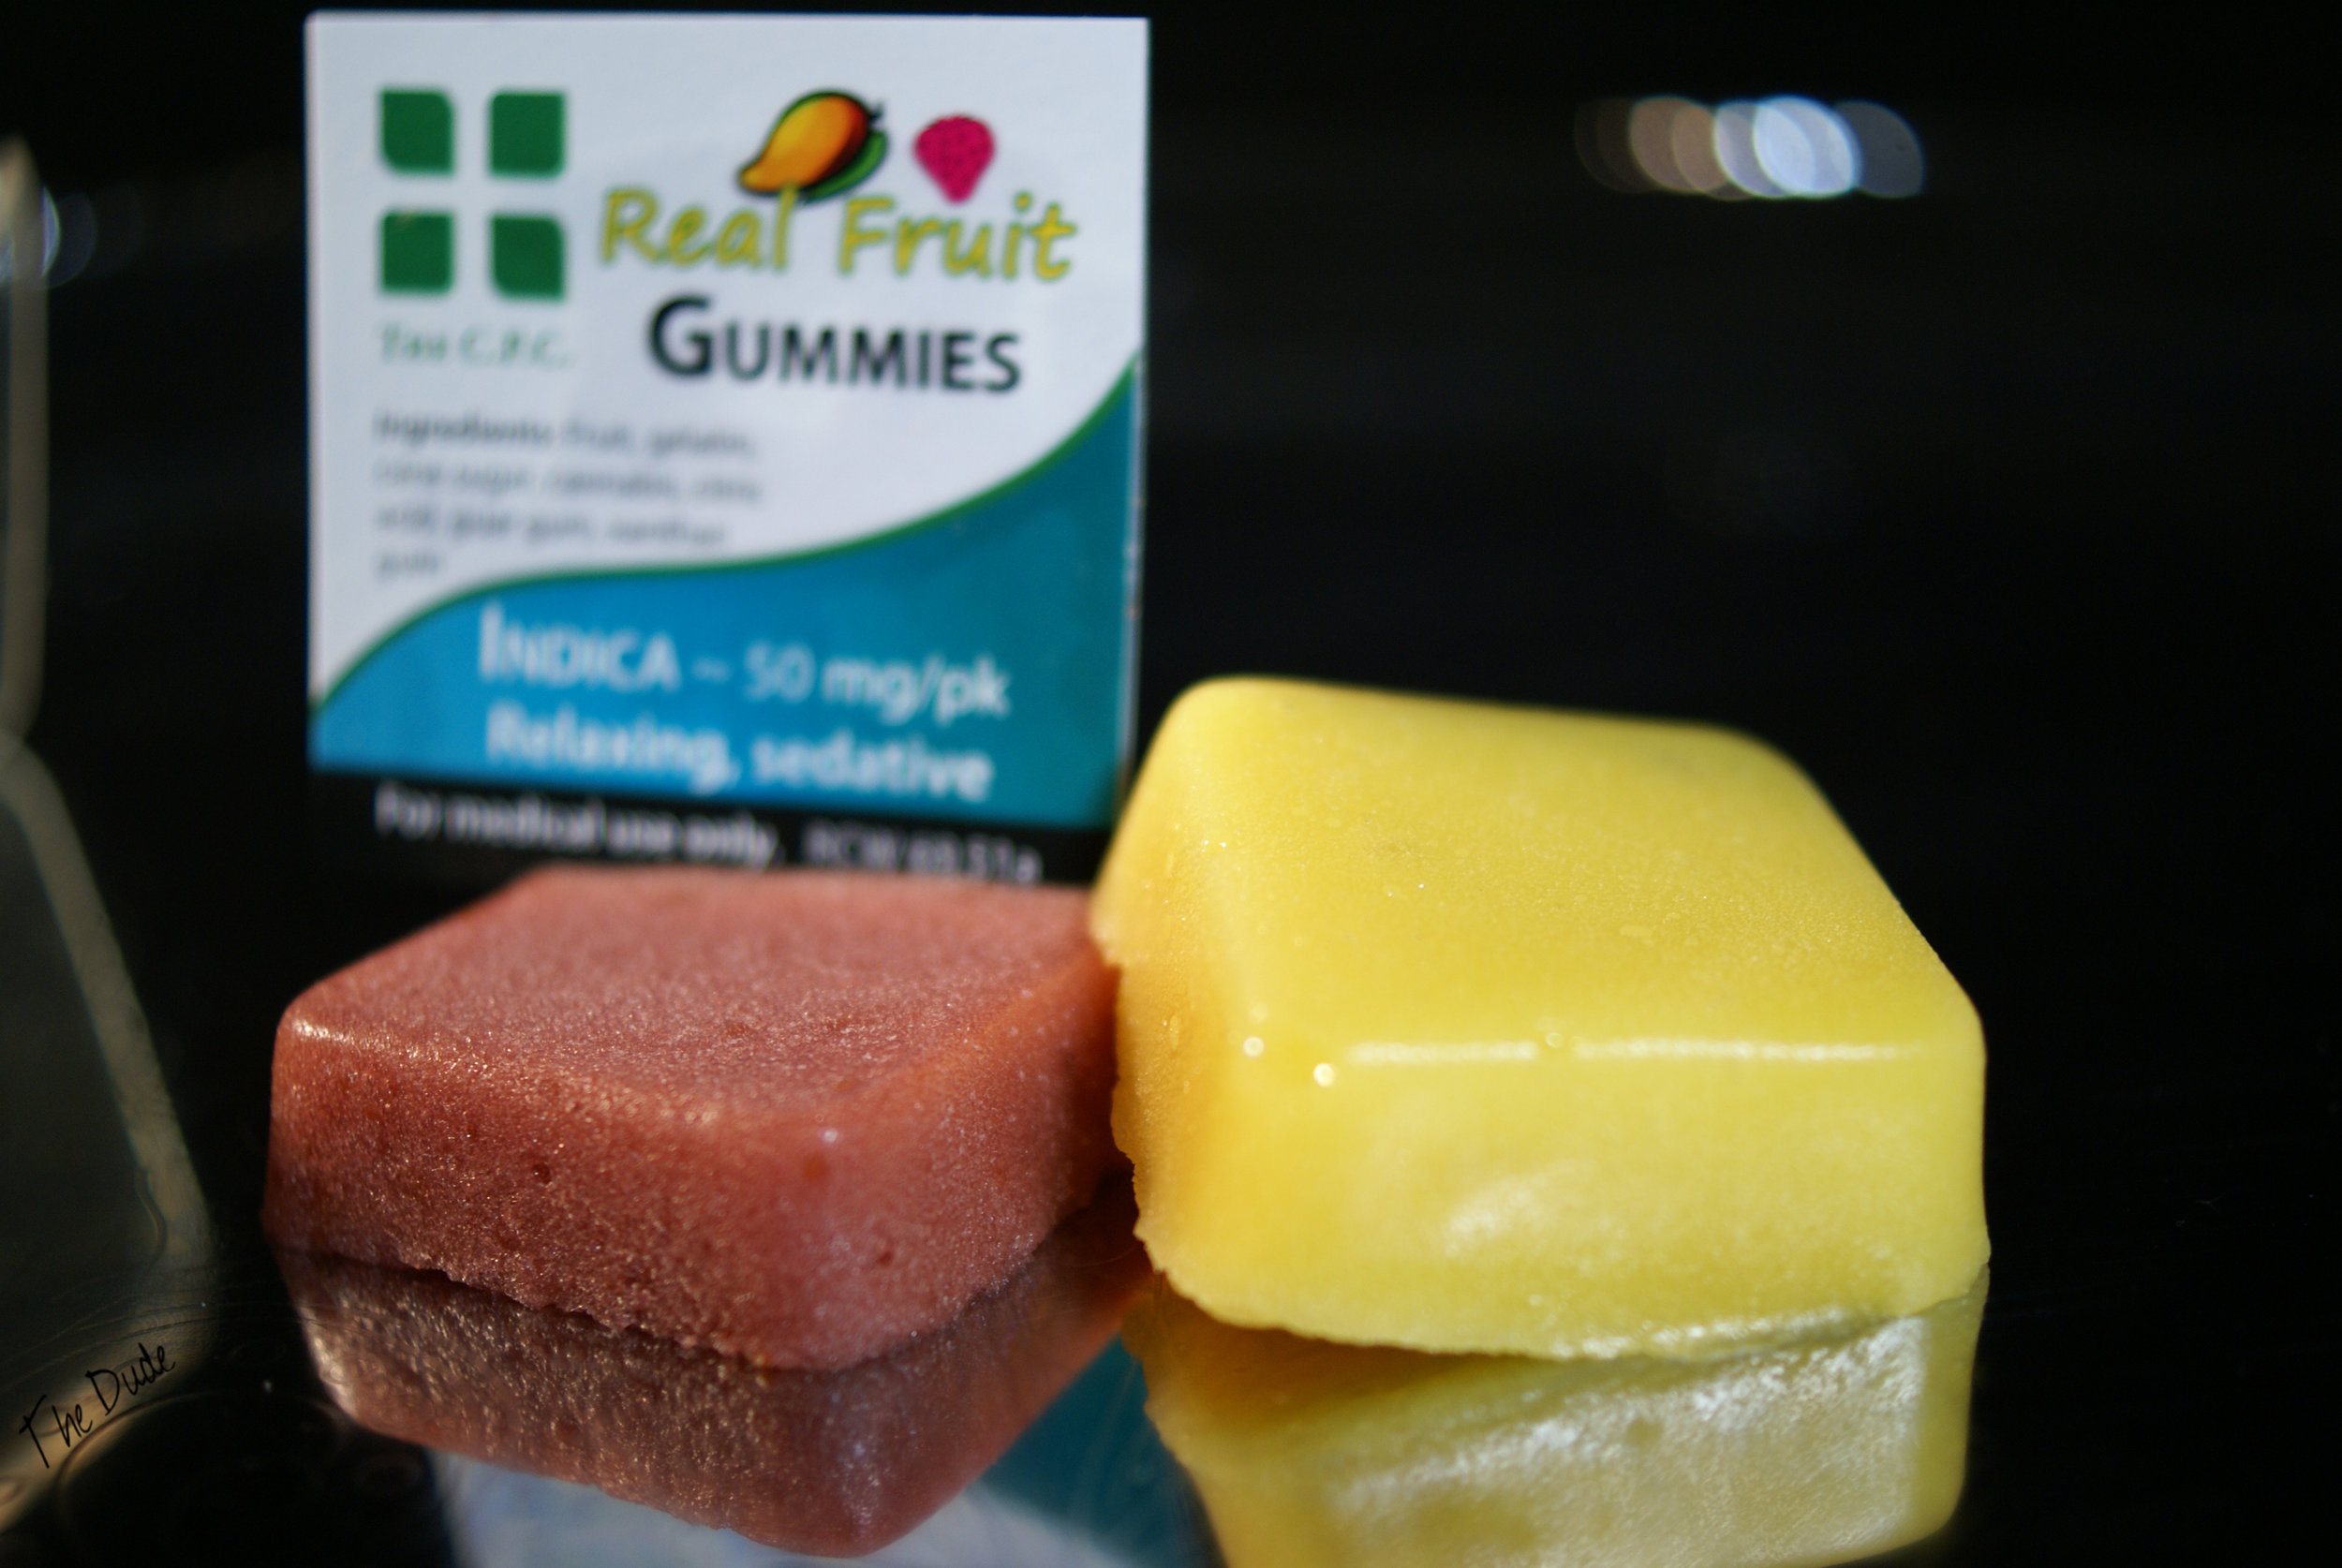 Medical Cannabis Indica Edibles for legal mmj use in Seattle